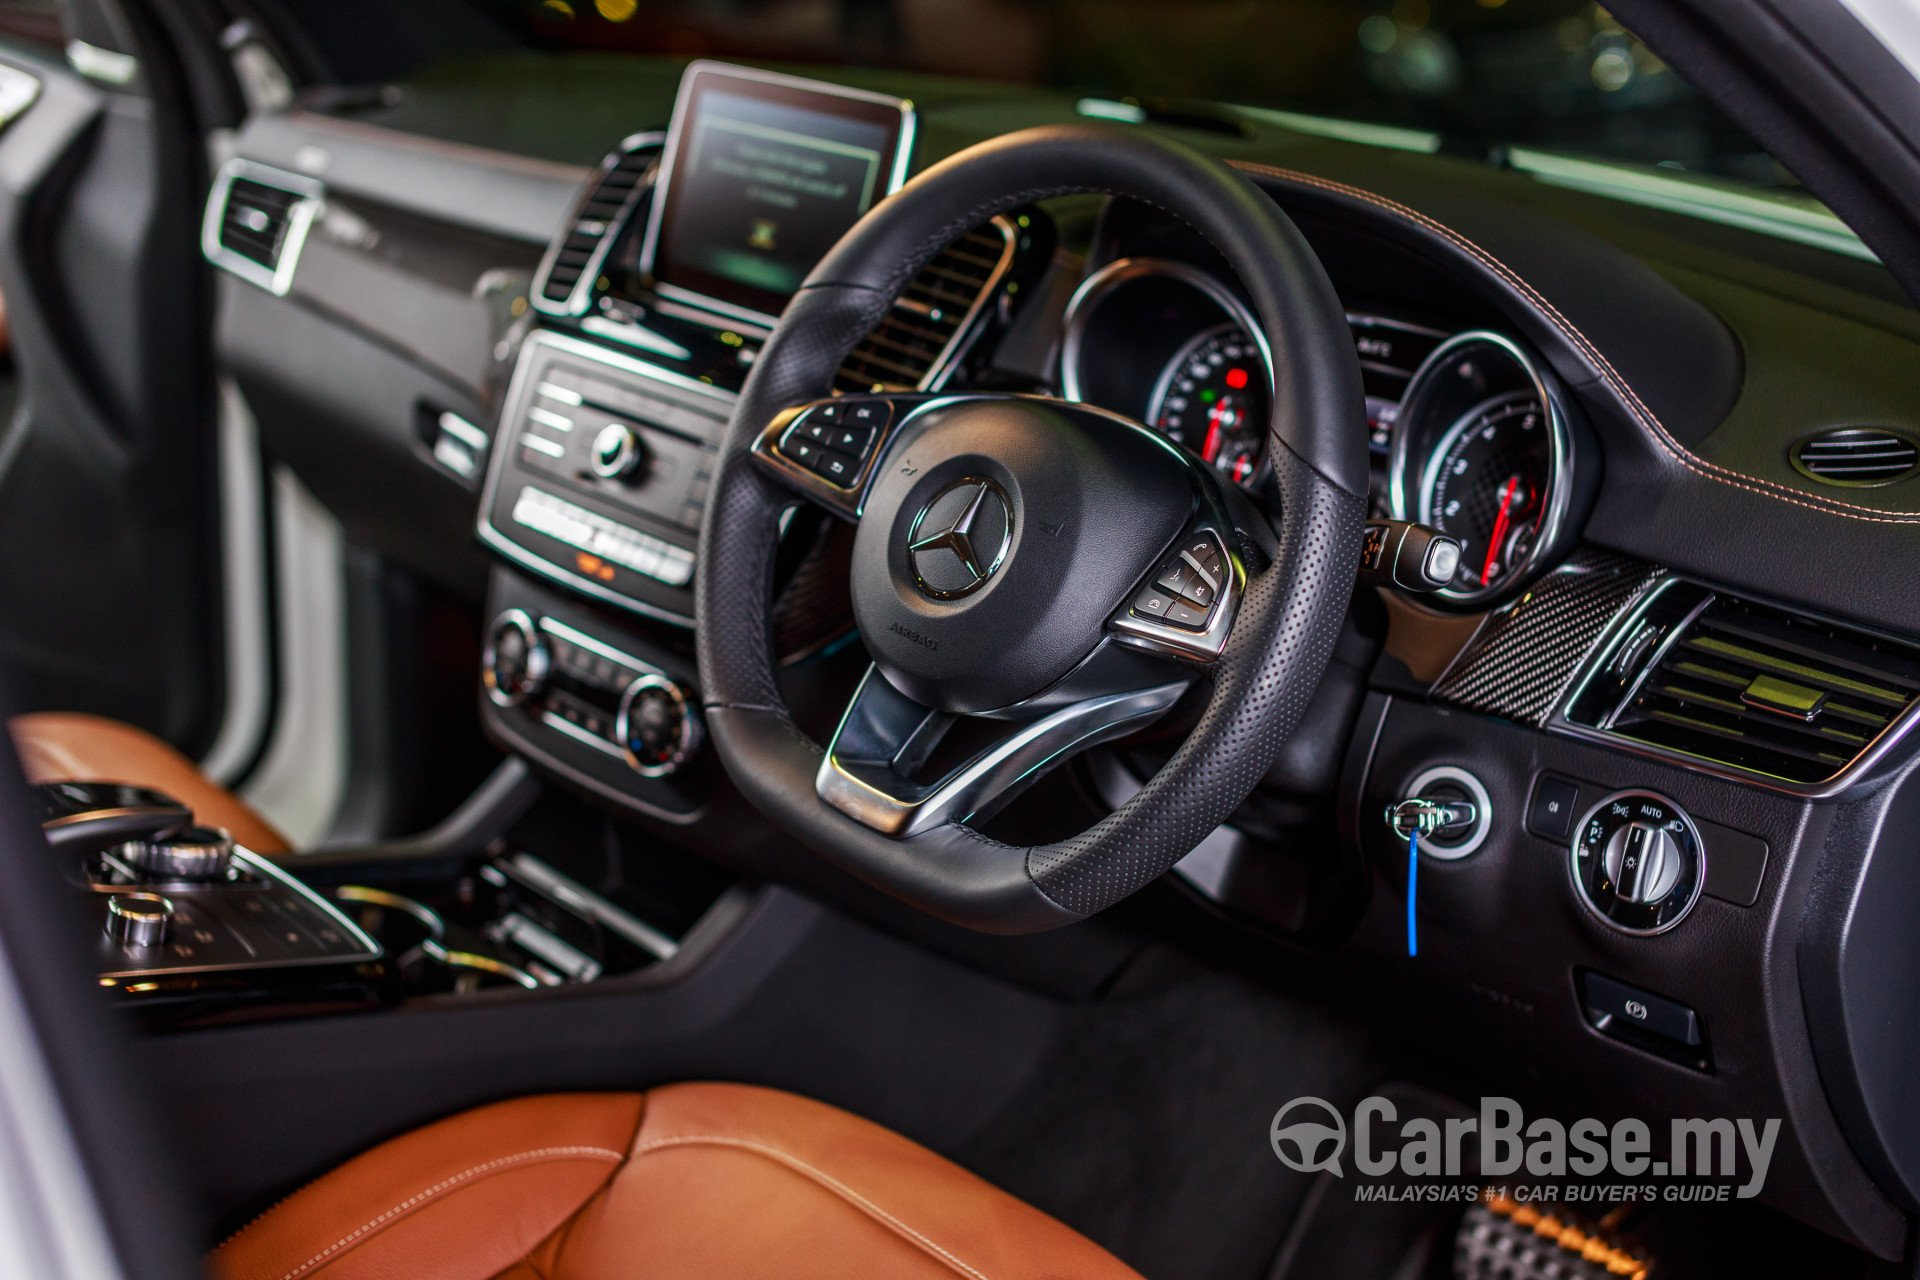 Mercedes Benz Gle Coupe C292 2016 Interior Image In Malaysia